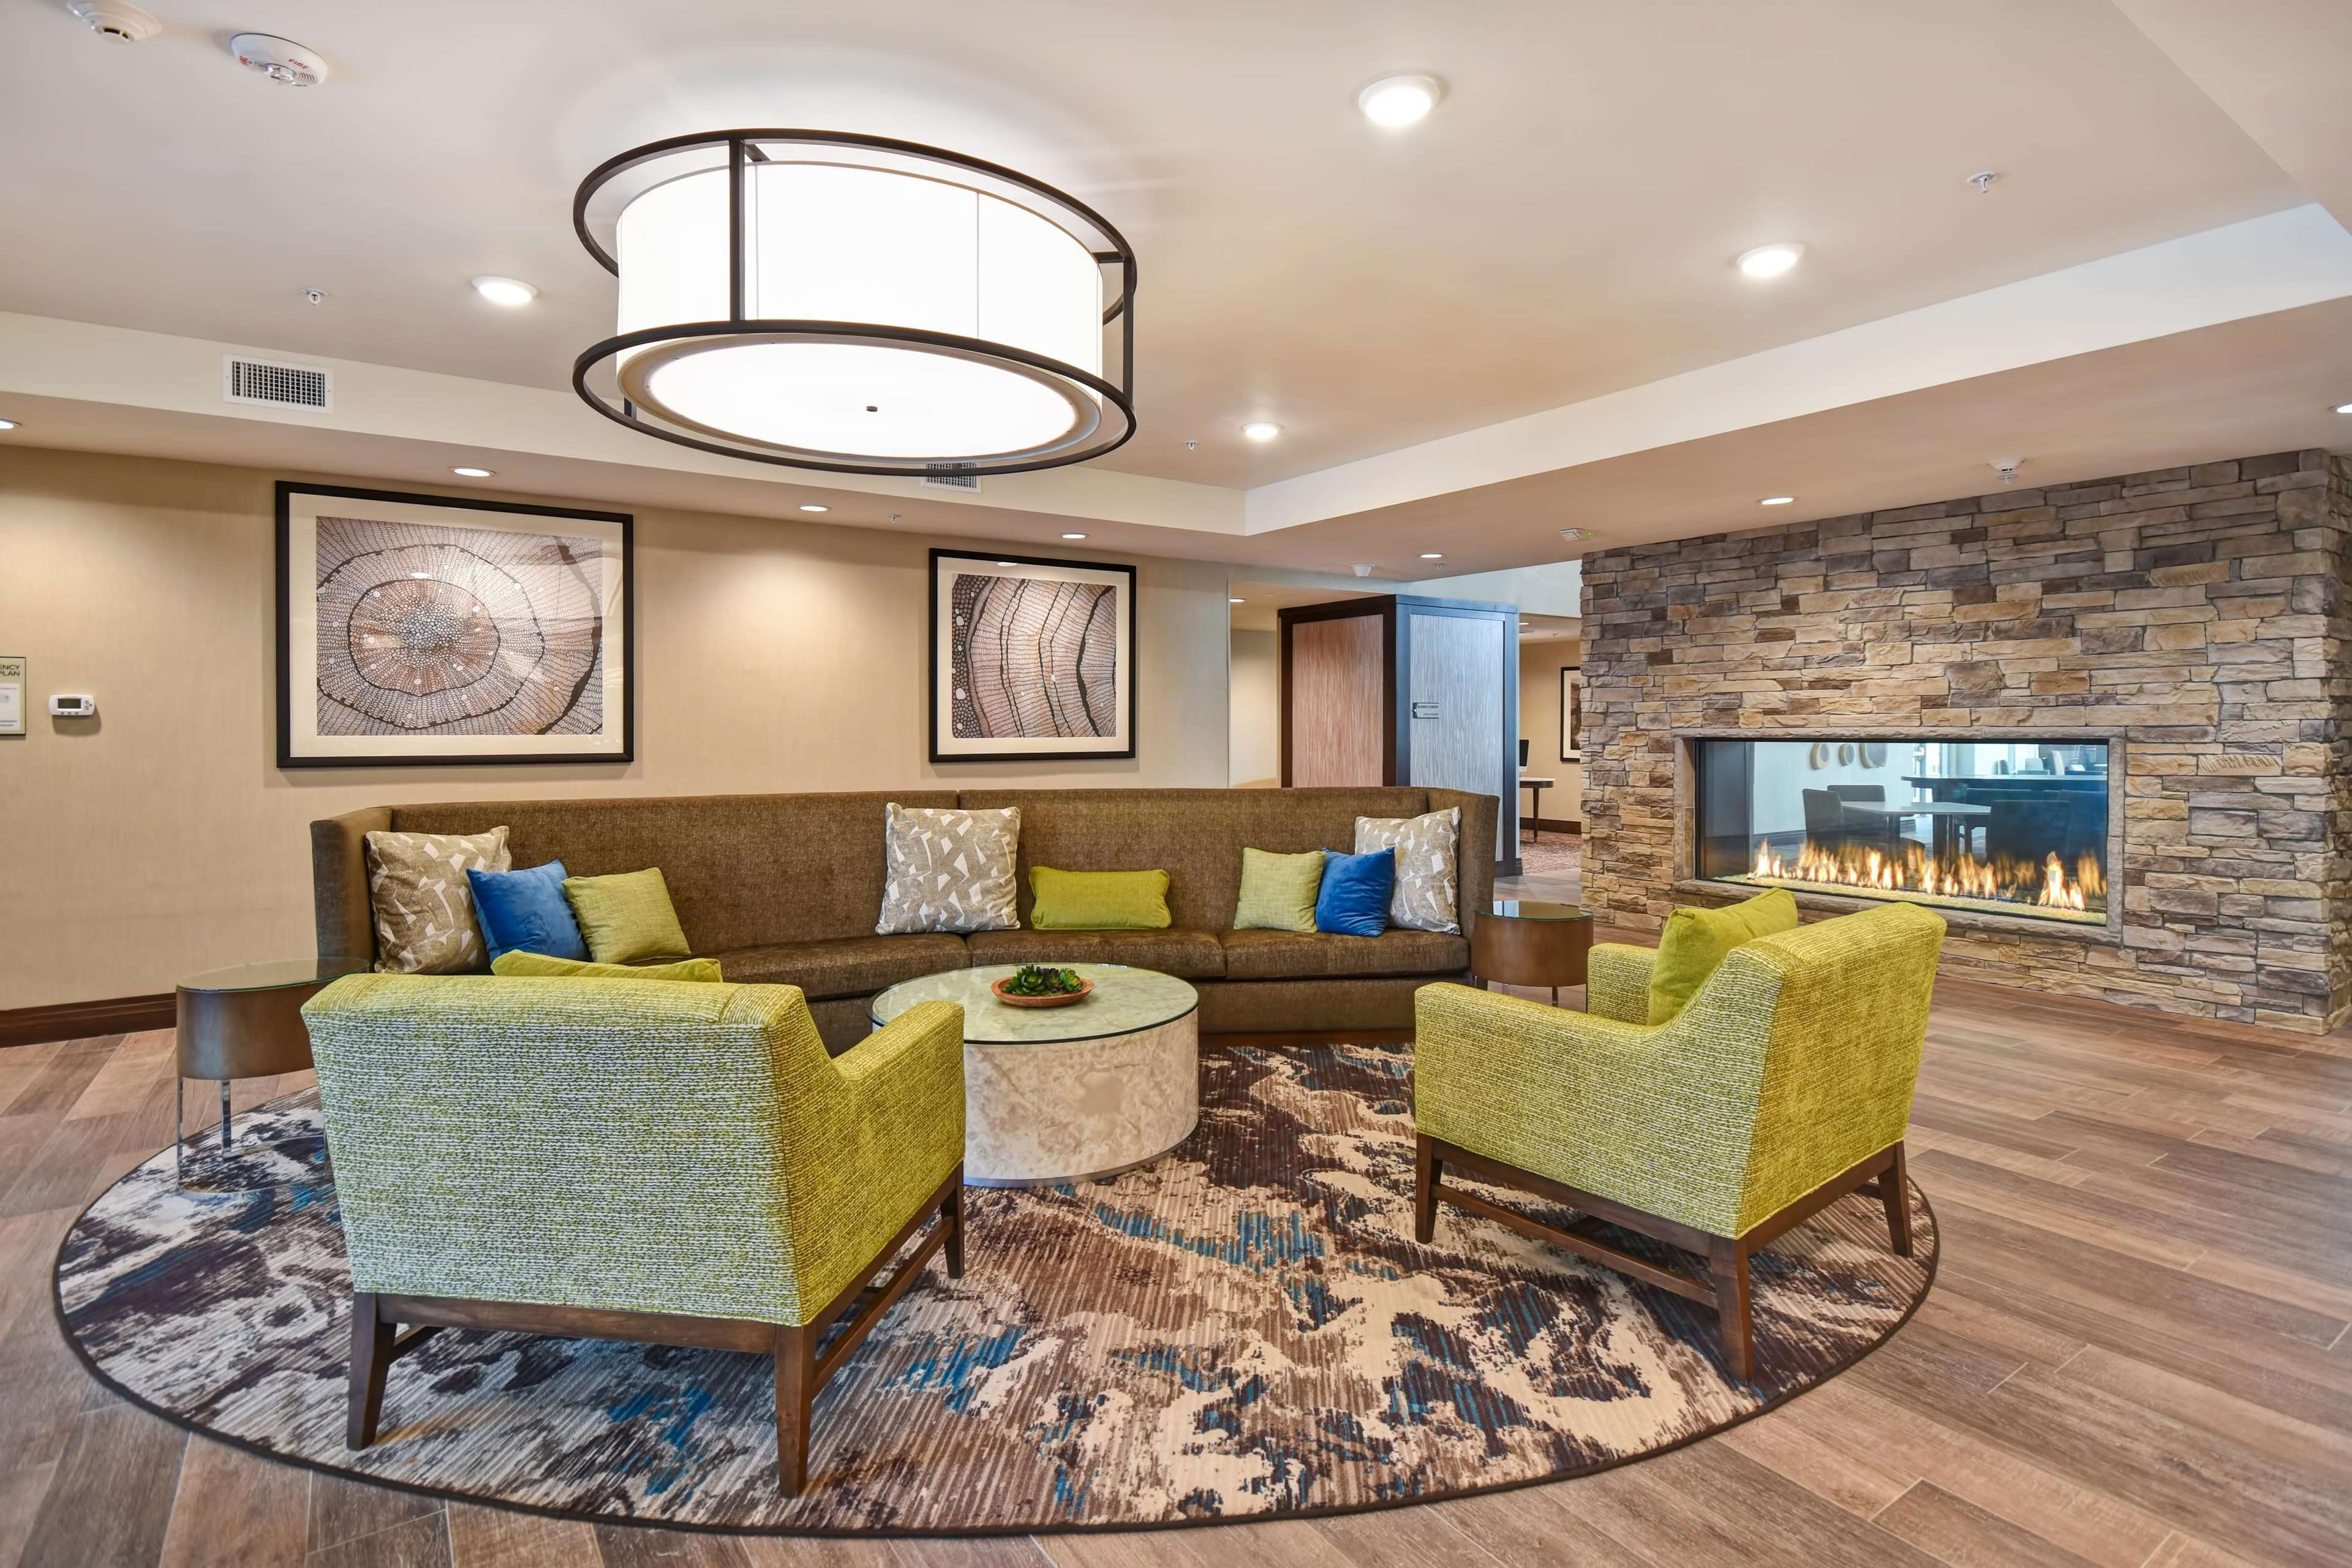 Homewood Suites by Hilton Pleasant Hill Concord image 1